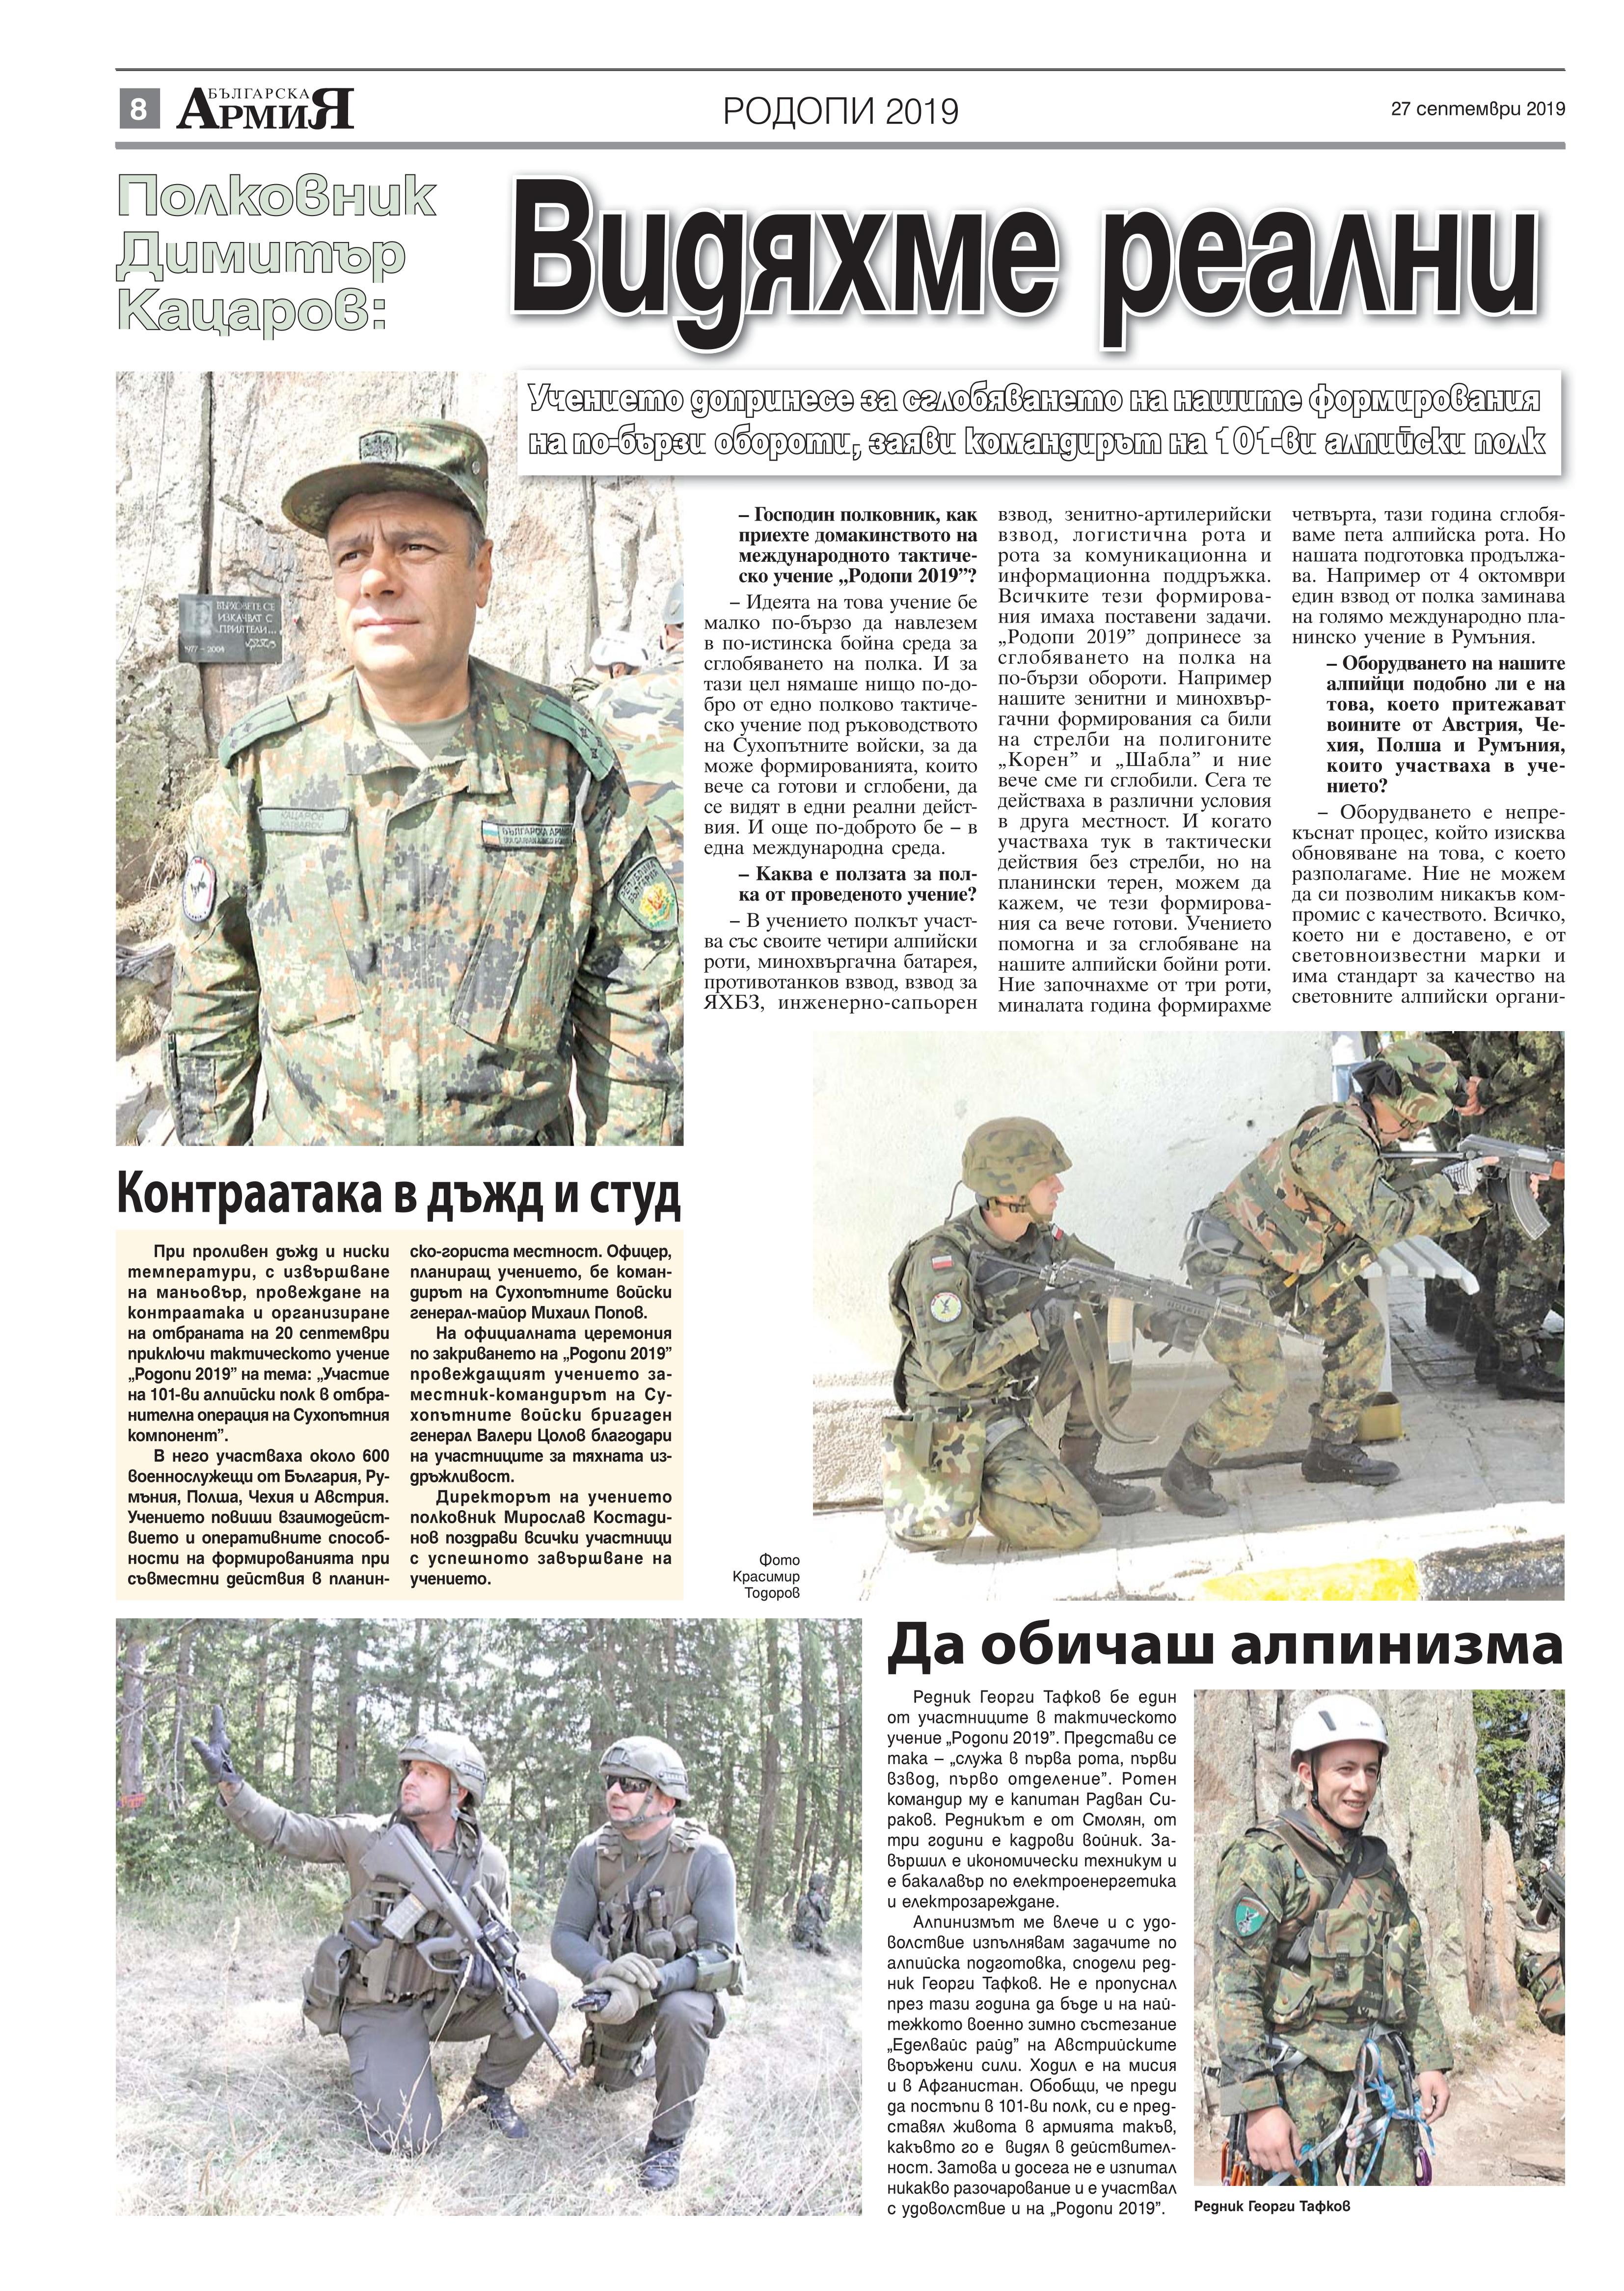 https://www.armymedia.bg/wp-content/uploads/2015/06/08.page1_-107.jpg